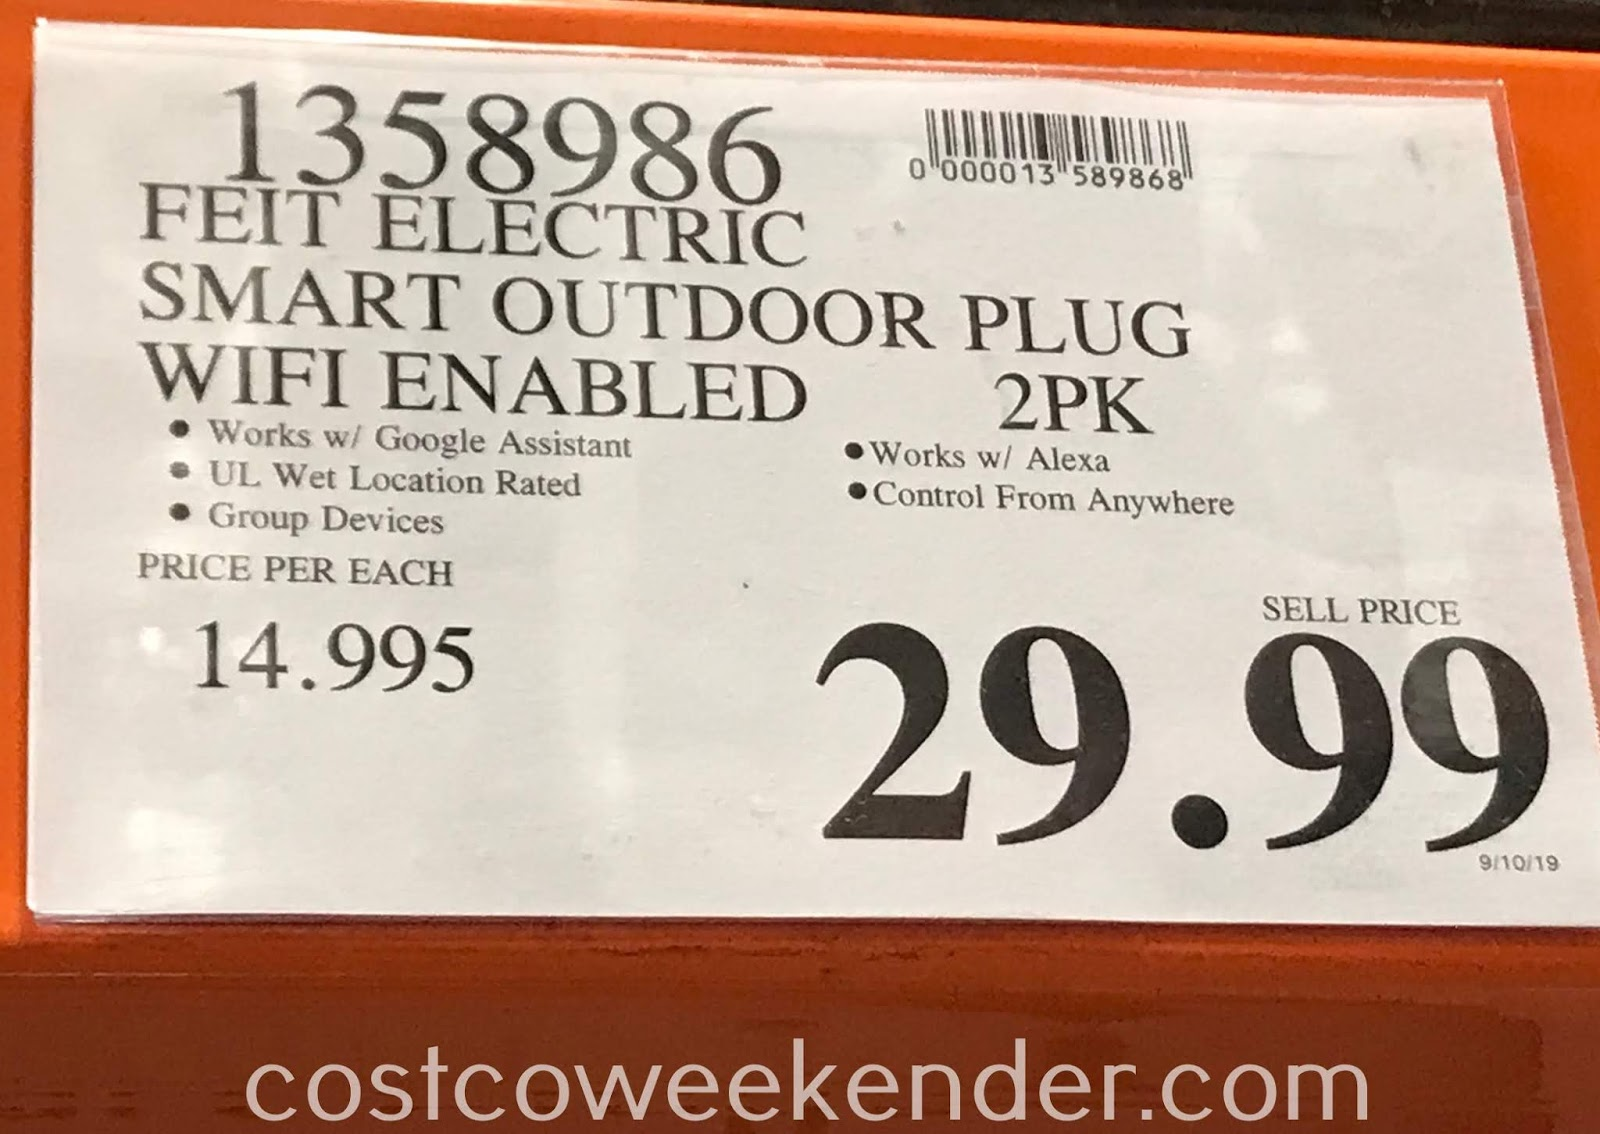 Deal for a 2 pack of Feit Electric Dual Outlet Outdoor Smart Plugs at Costco